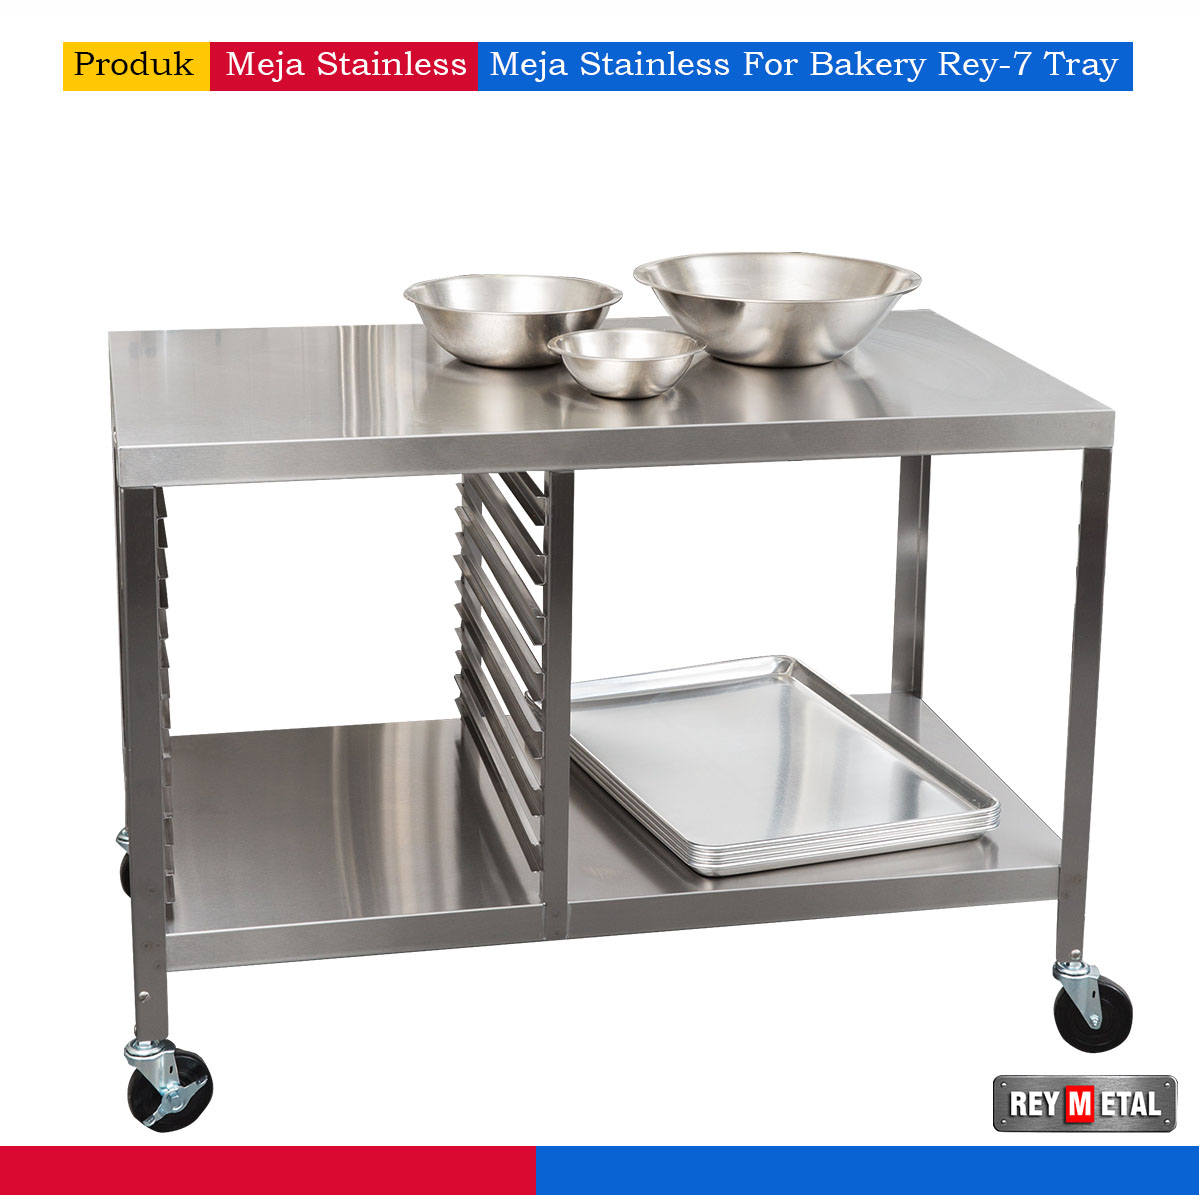 Meja stainless steel for bakery for Harga kitchen set stainless steel